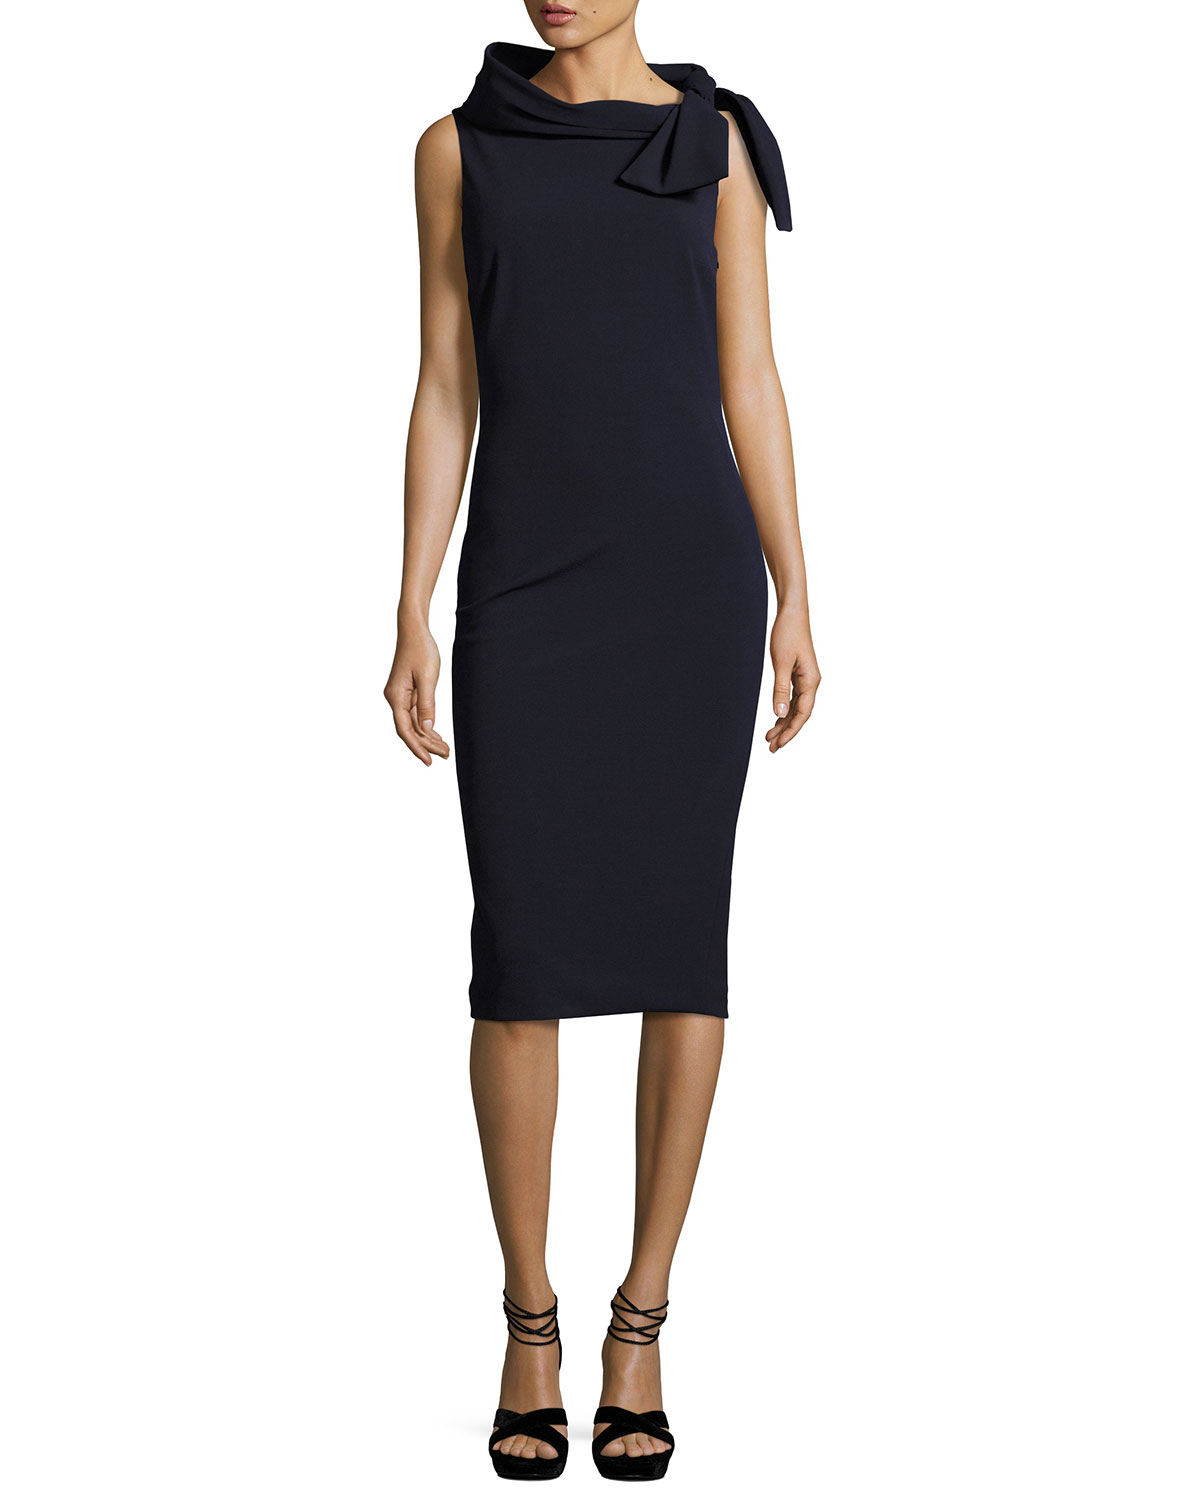 2d122b74f37 Badgley Mischka Collection Sleeveless Tie-Neck Cocktail Dress